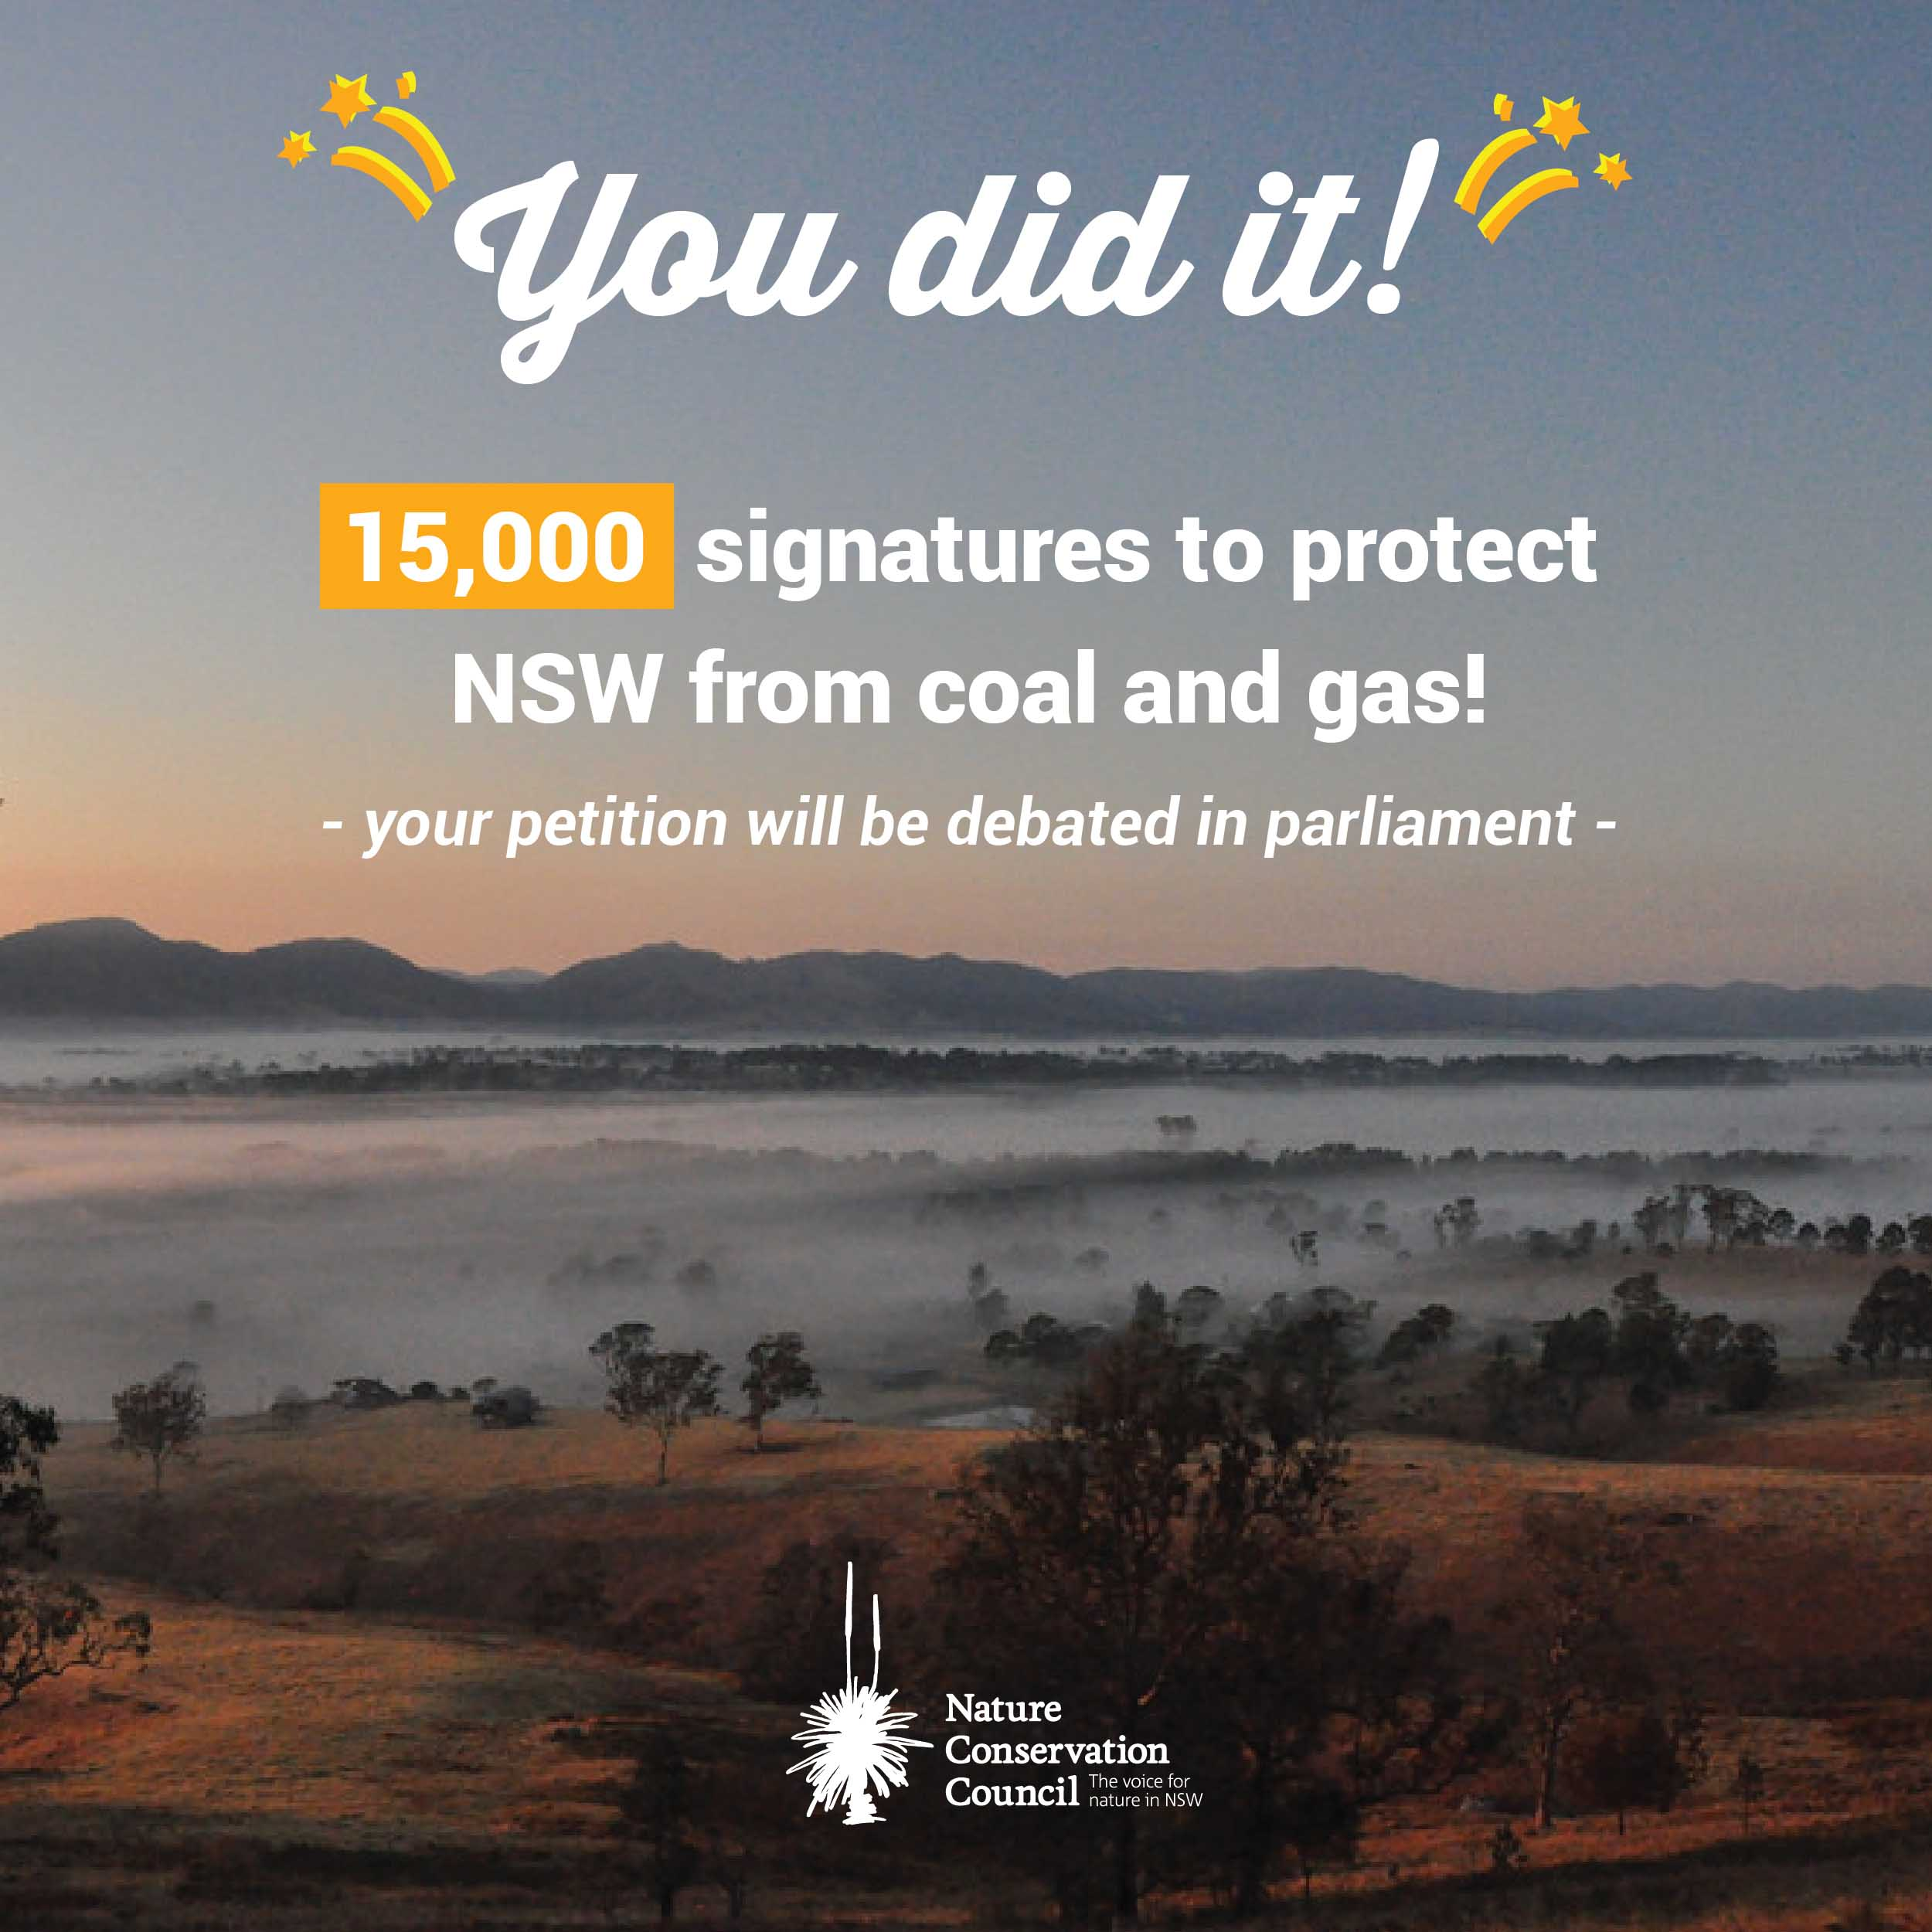 Image of farmland. Text reads: 'you did it! 15,000 signatures to protect NSW from coal and gas! Your petition will now be debated in parliament'